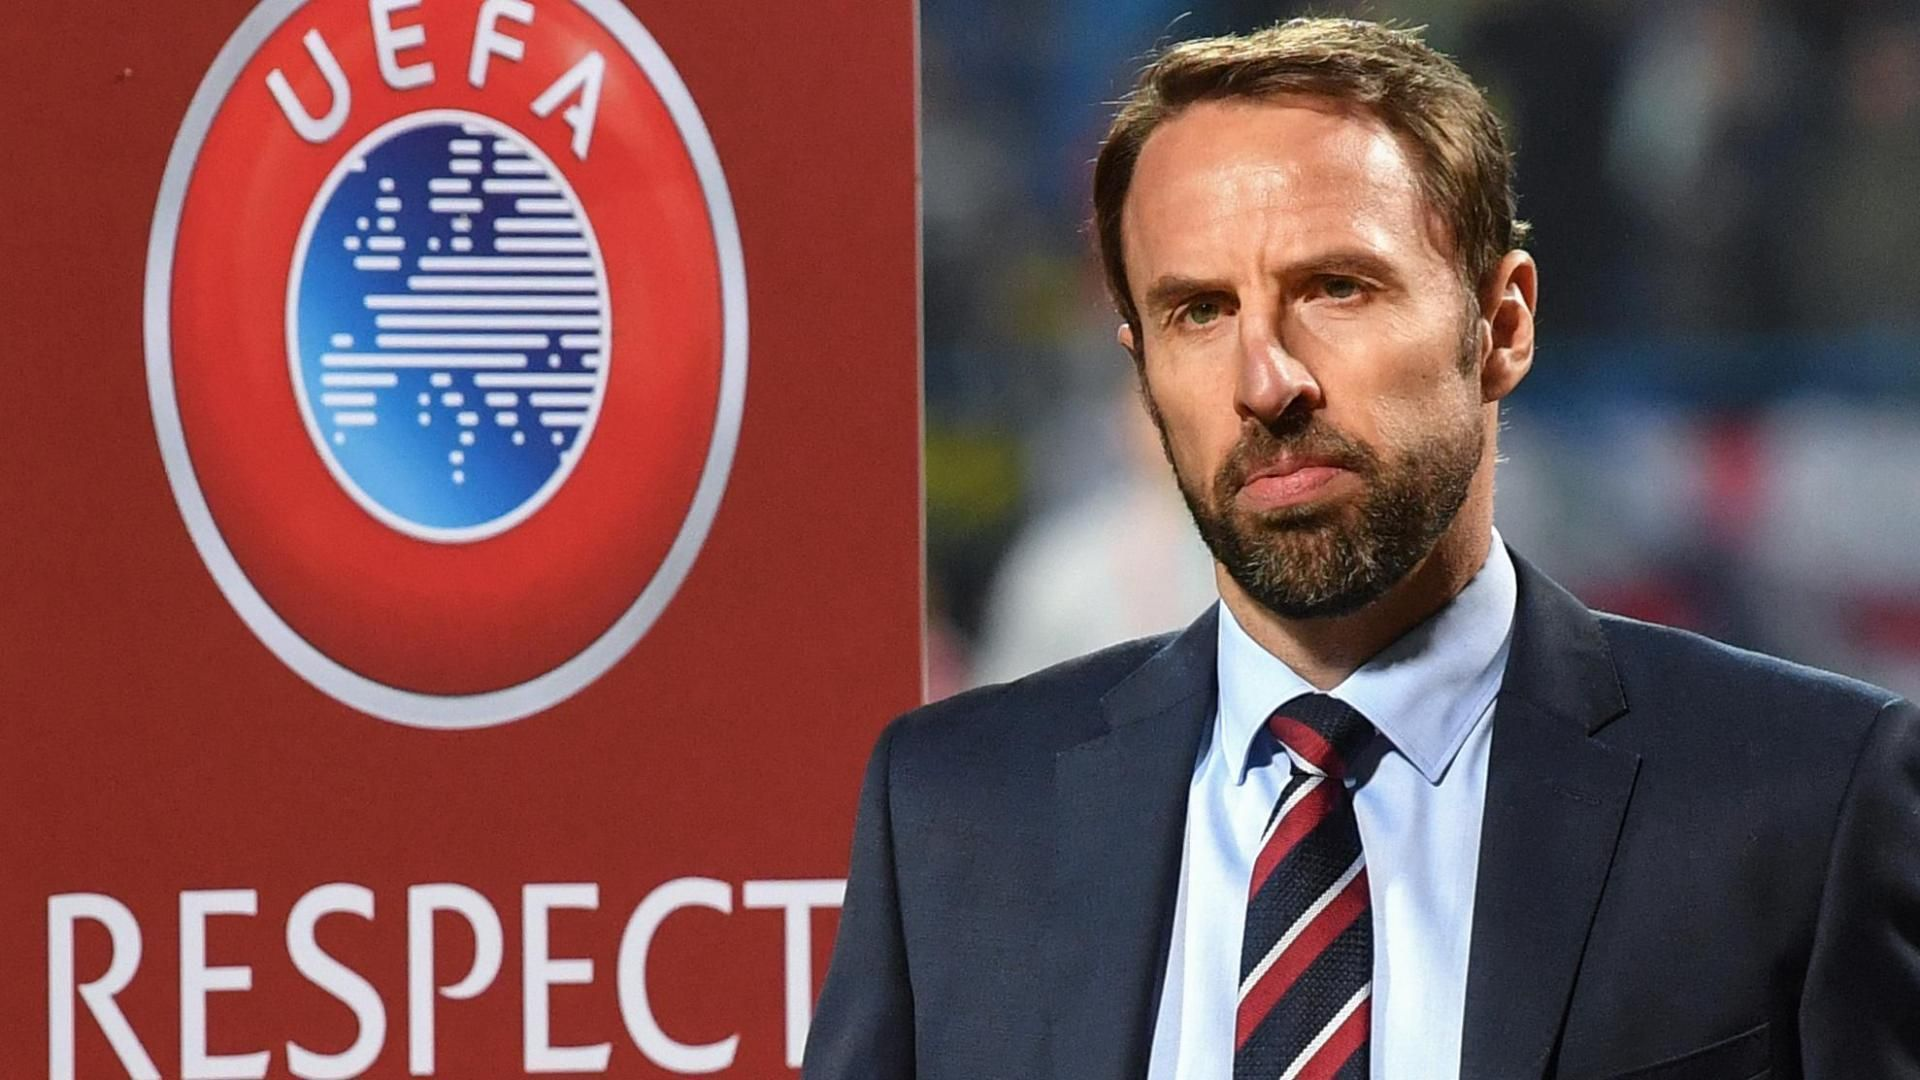 Southgate on racist chants: I know what I heard